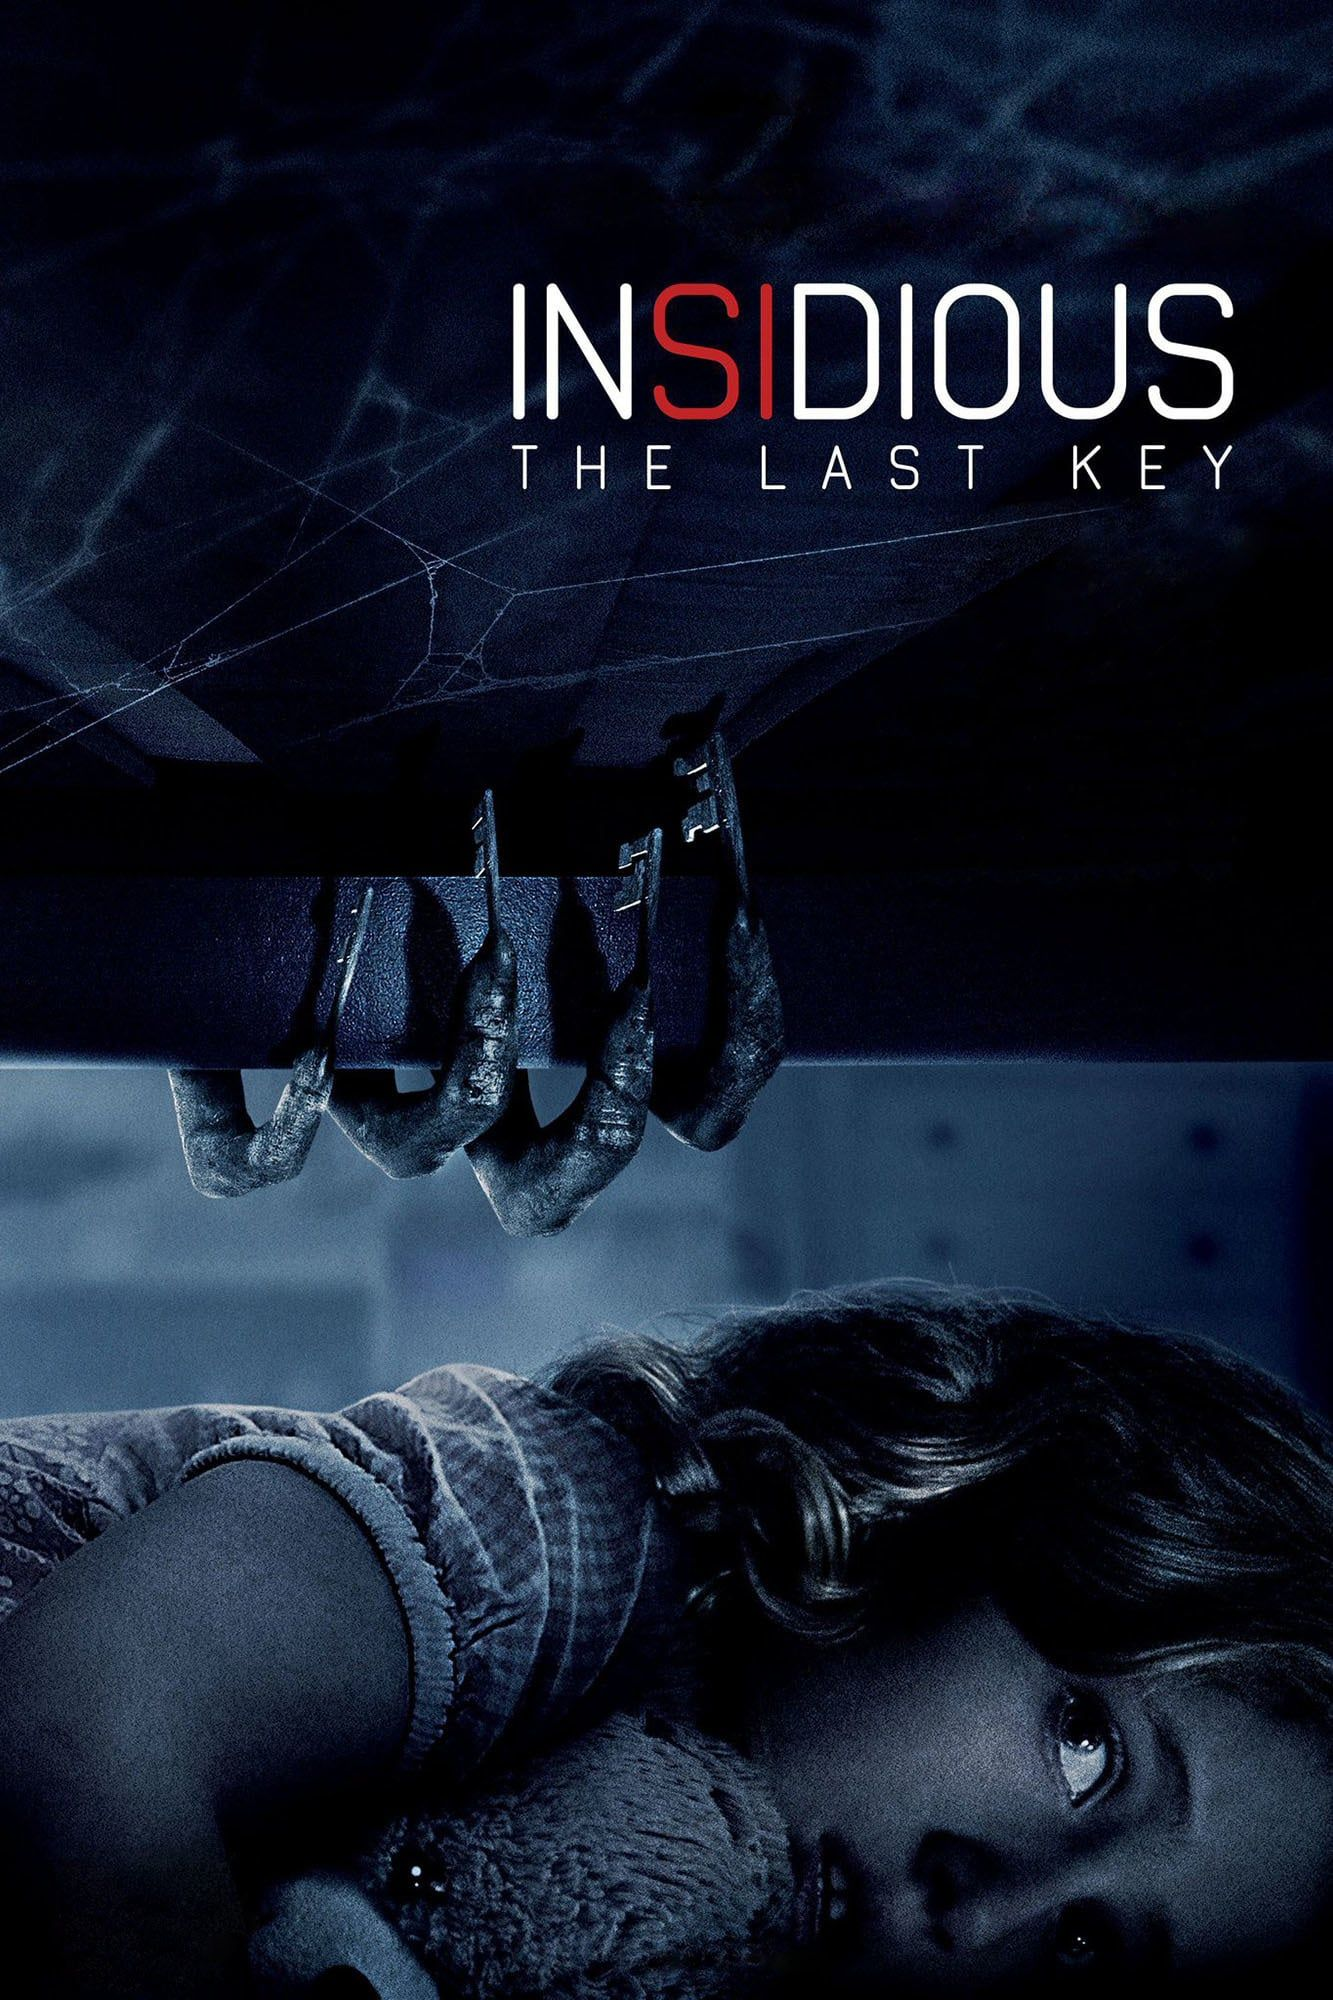 Insidious Four Lultima Chiave Eight Film Completo Di Genere Horror